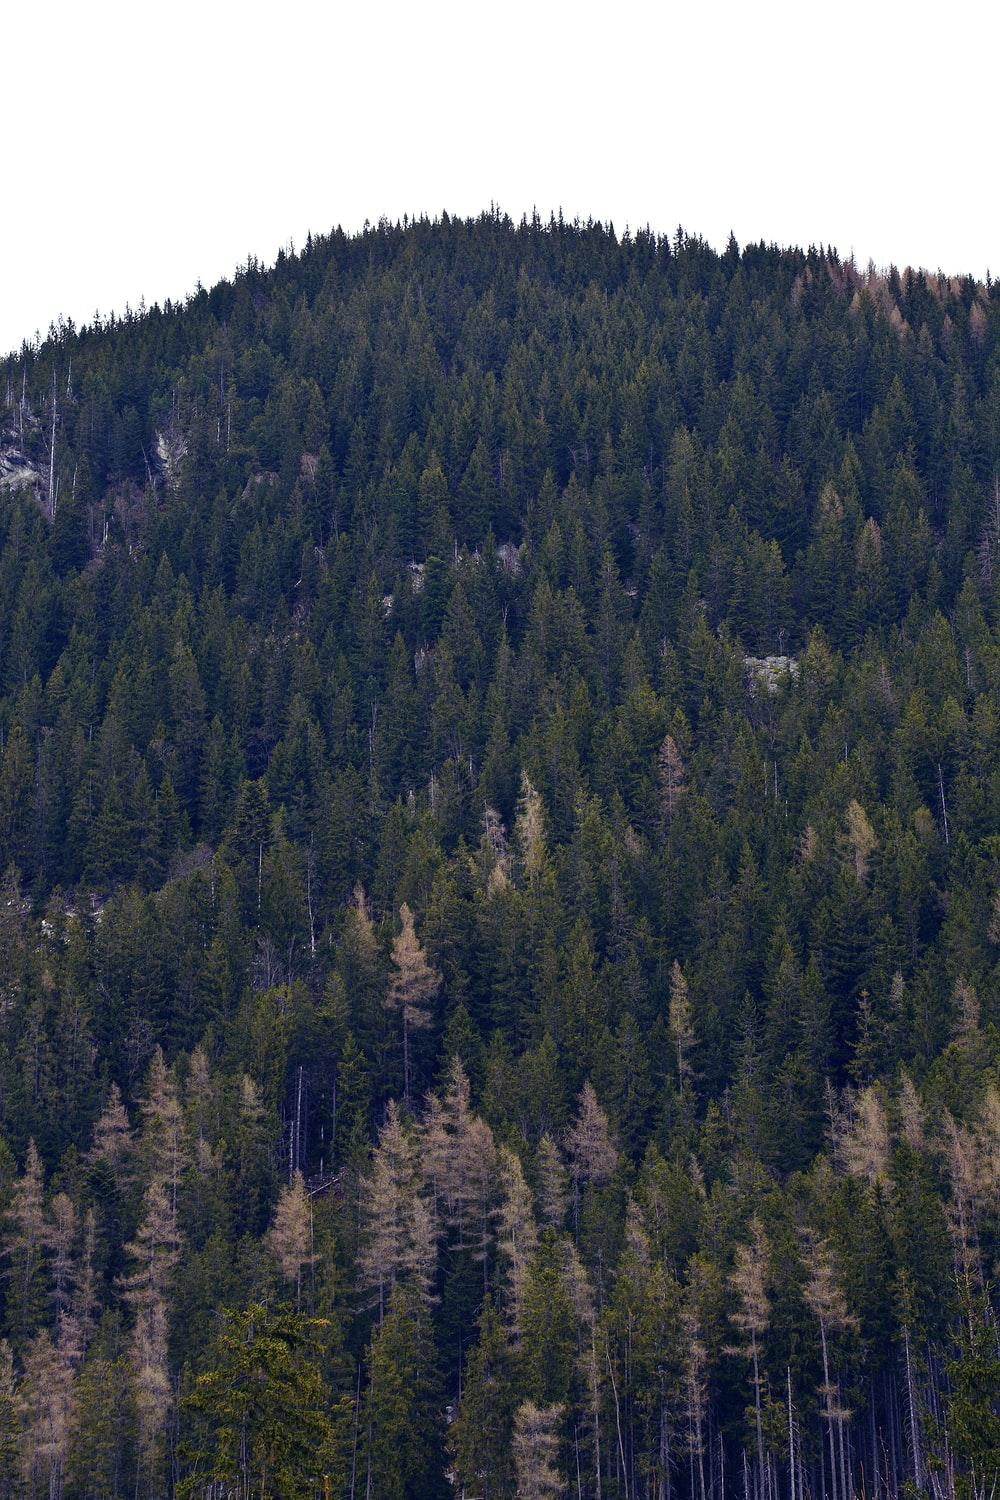 green pine trees on mountain during daytime